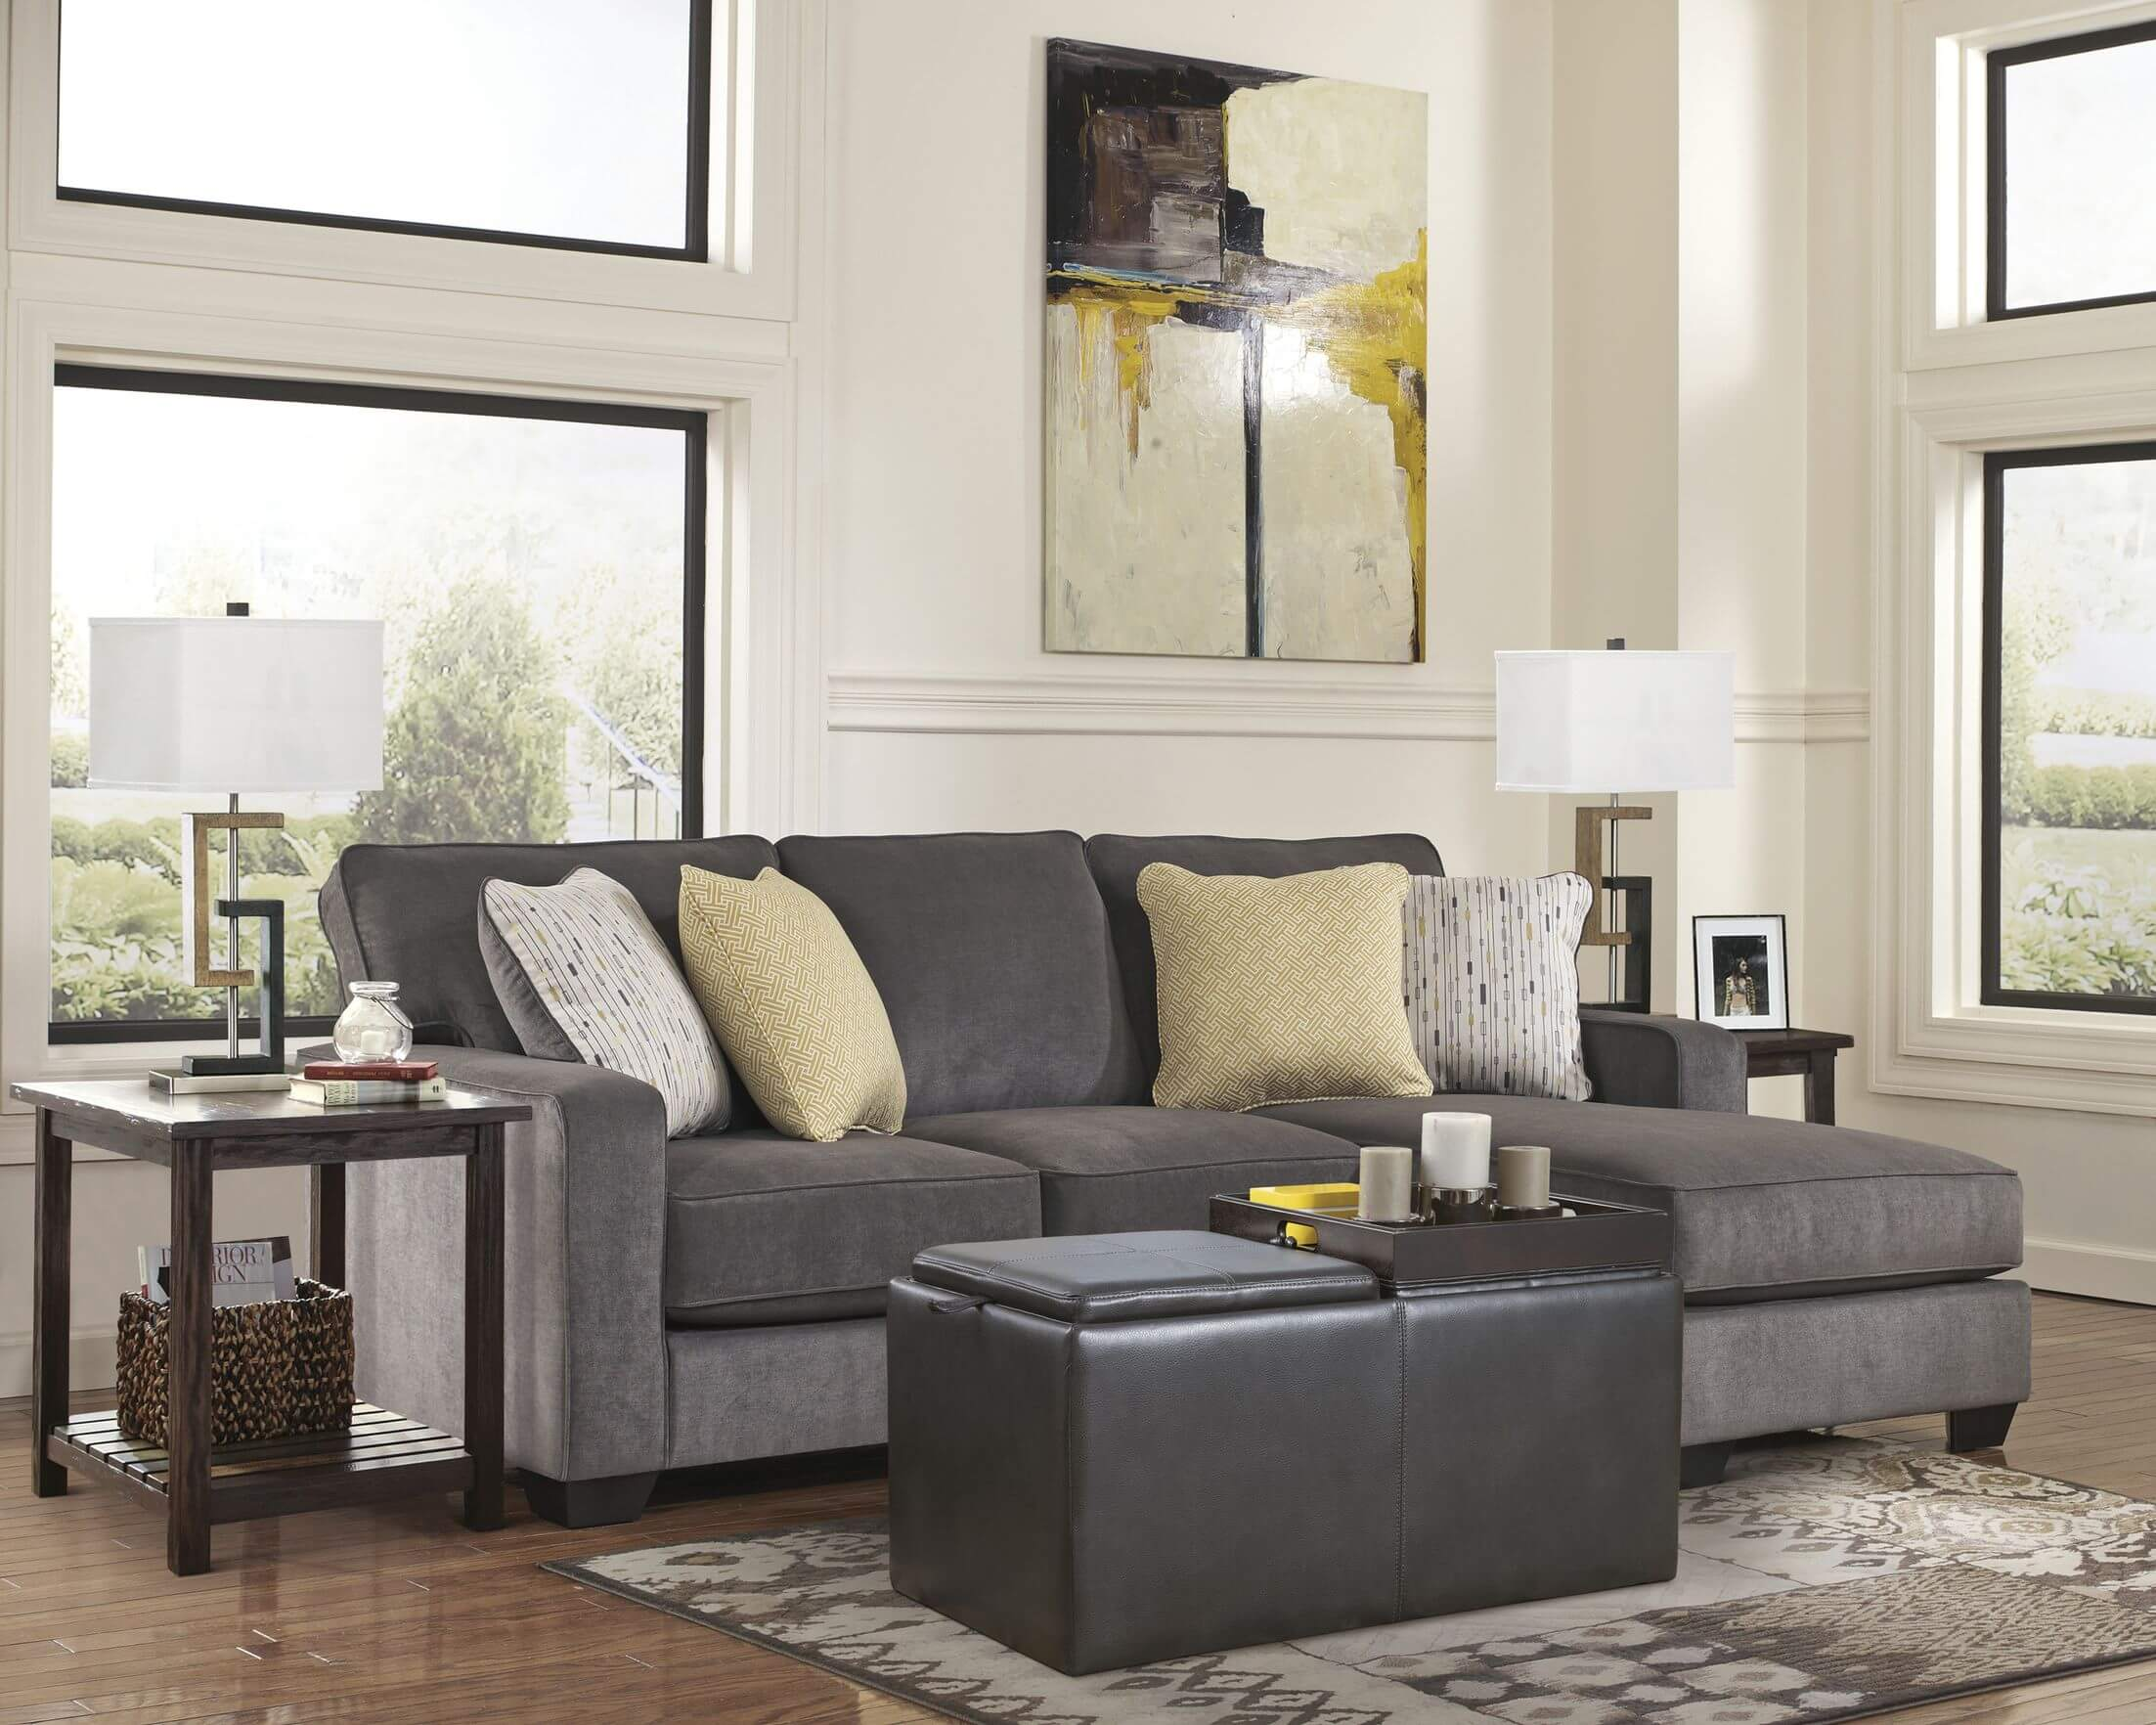 grey sectional living room ideas home images 45 contemporary rooms with sofas pictures this cozy space features a simple and direct cushion backed couch built in